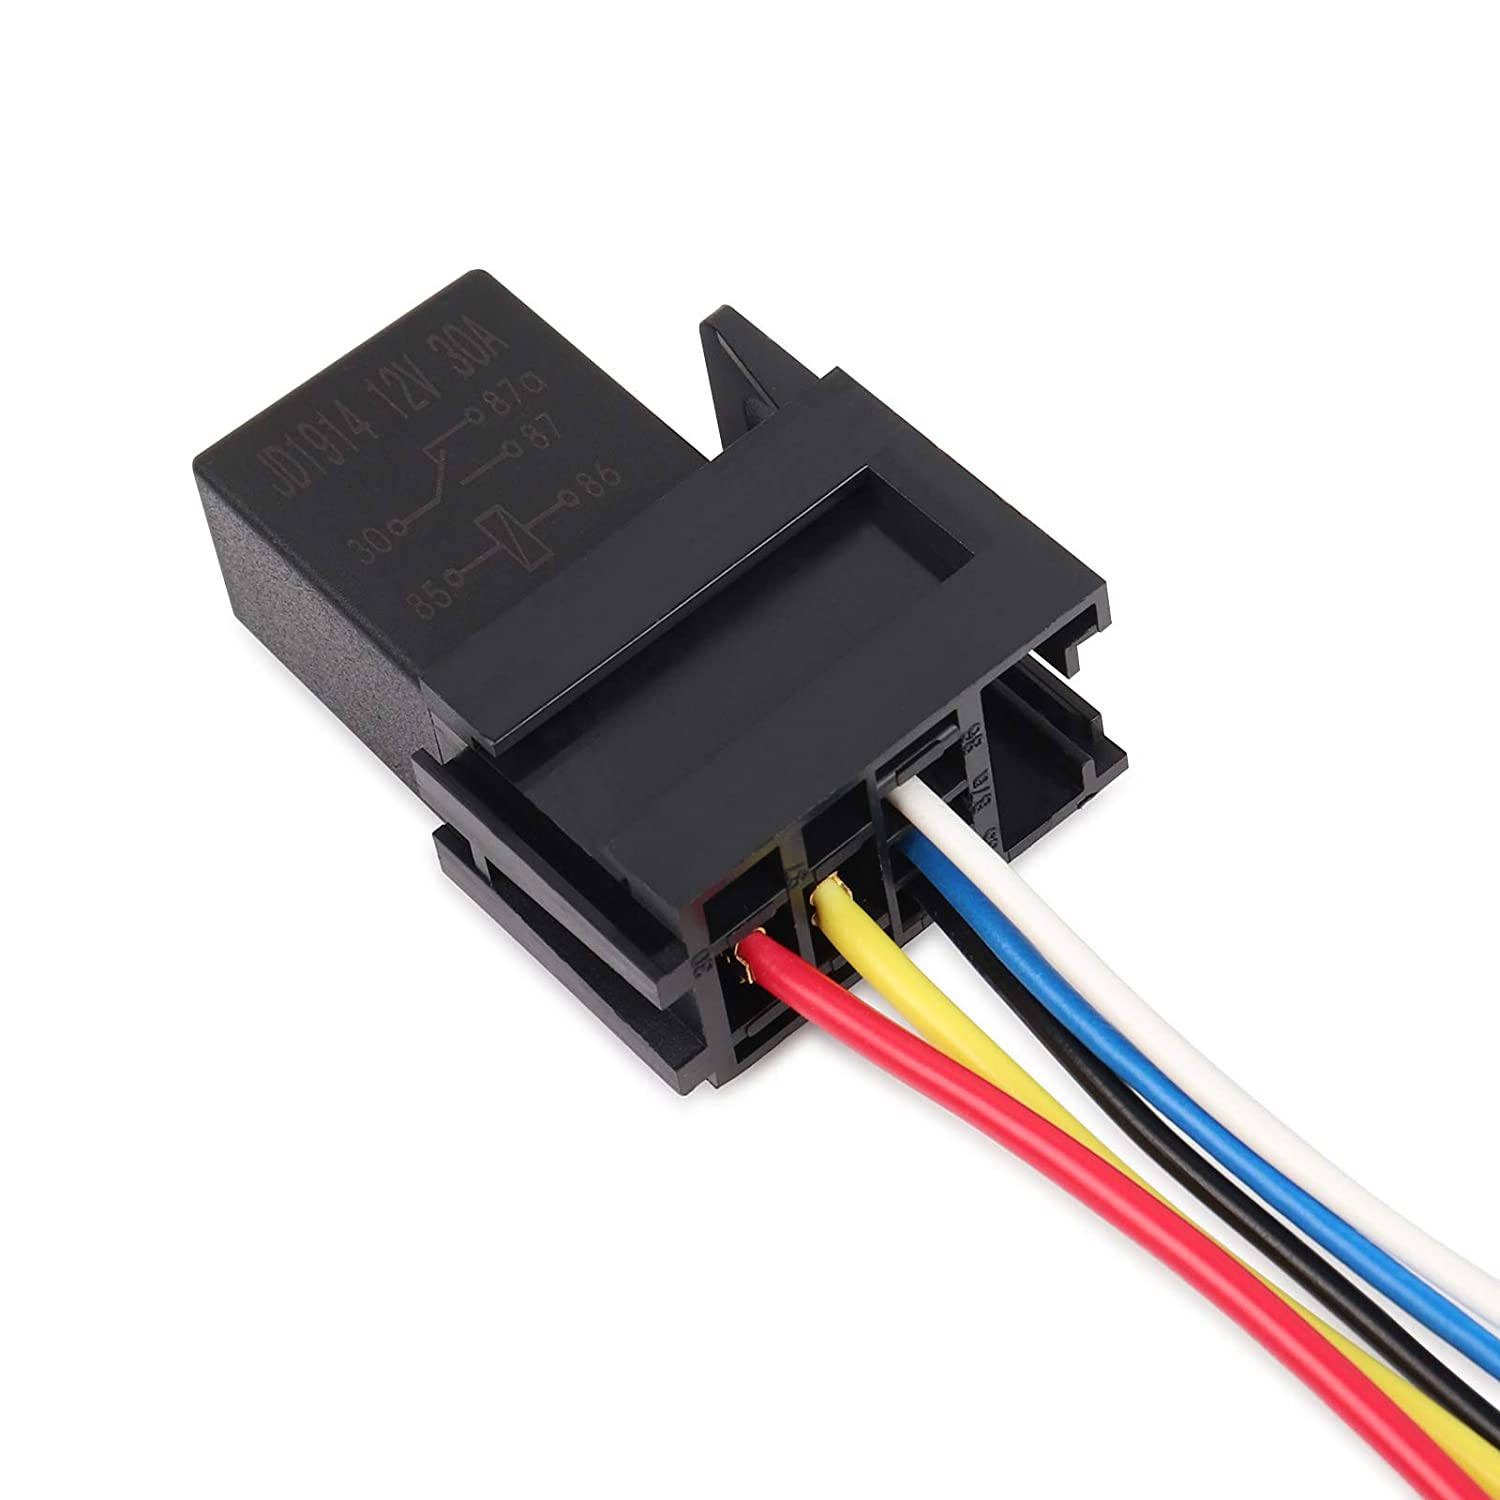 Ehdis 5 Pin Wires Cable Relay Socket Harness Connector 12VDC 30A SPDT Multi-Purpose Heavy Duty Standard Relay Kits for Car Automotive Pack of 2